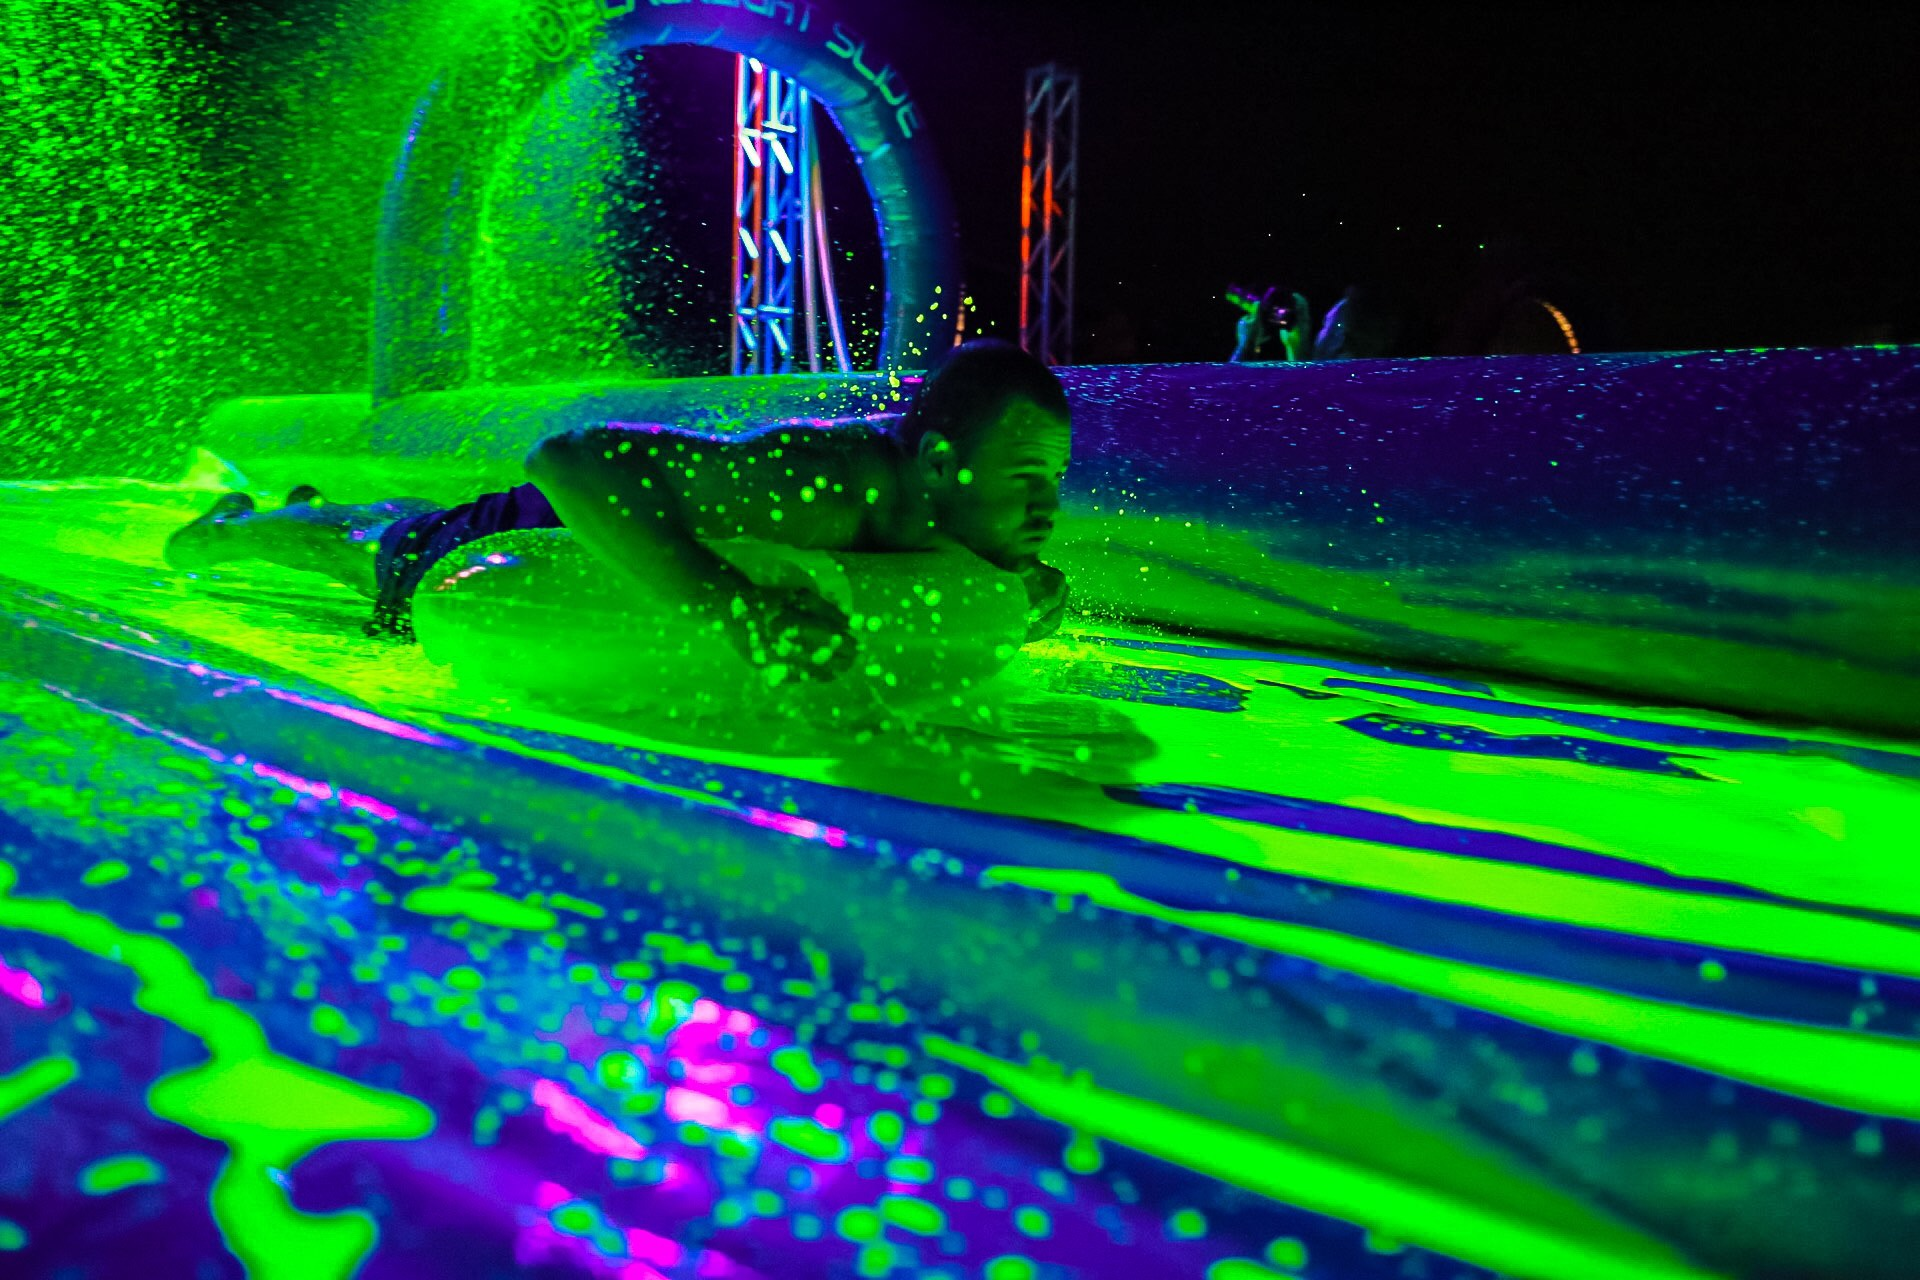 Blacklight Slide Party Comes to Raley Field  Sept 9